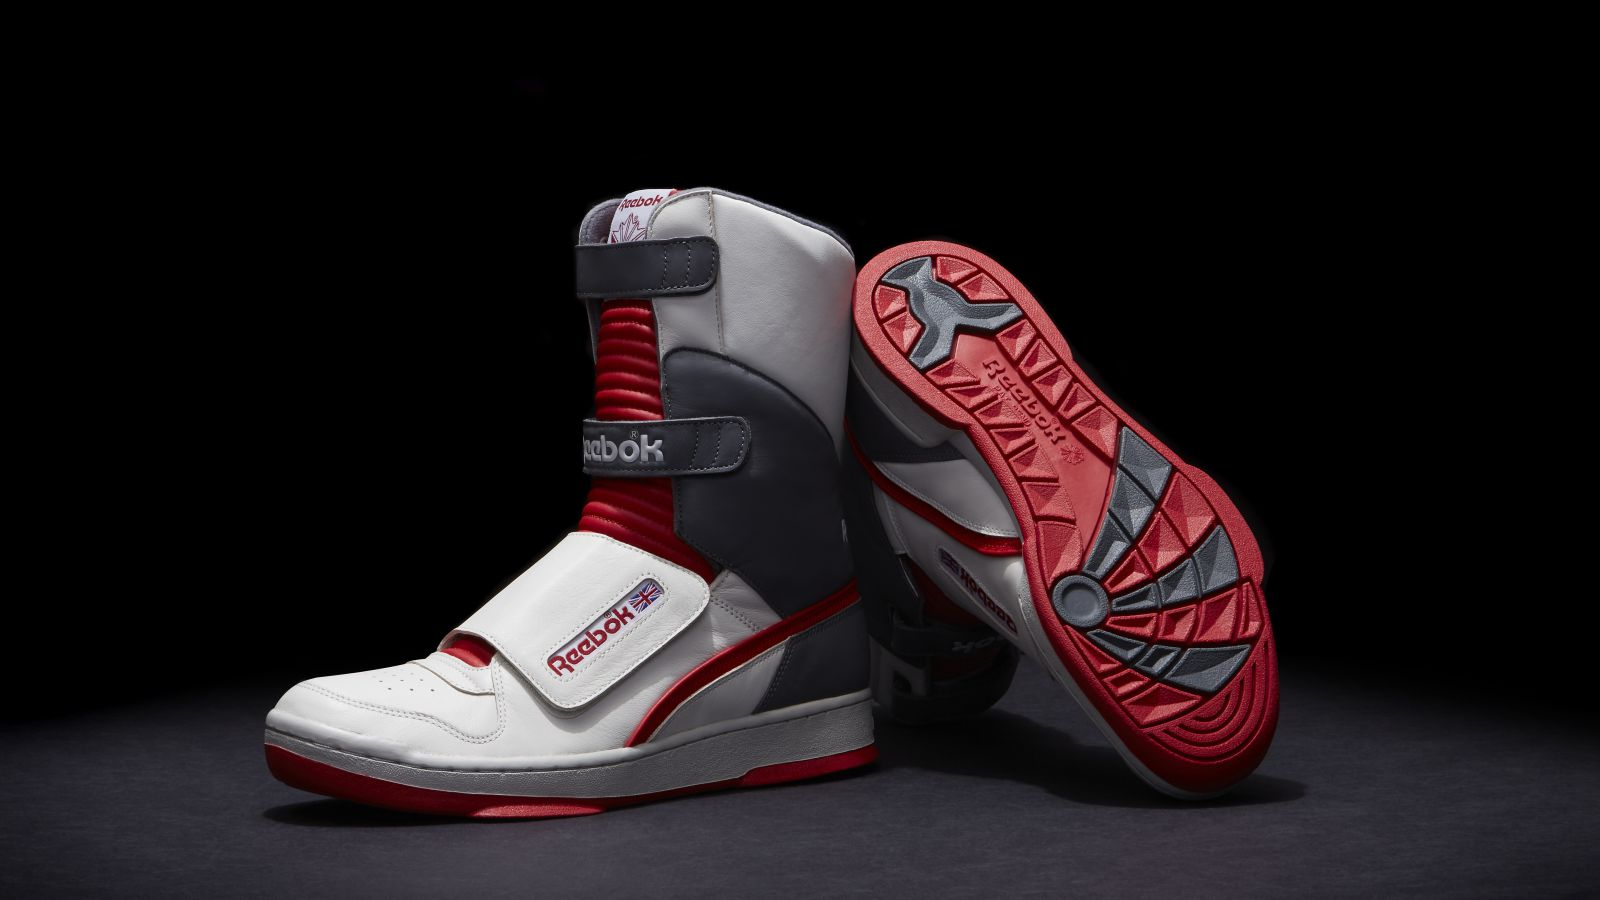 075ac506a132b Reebok Alien 30th Anniversary Shoes Sales Out